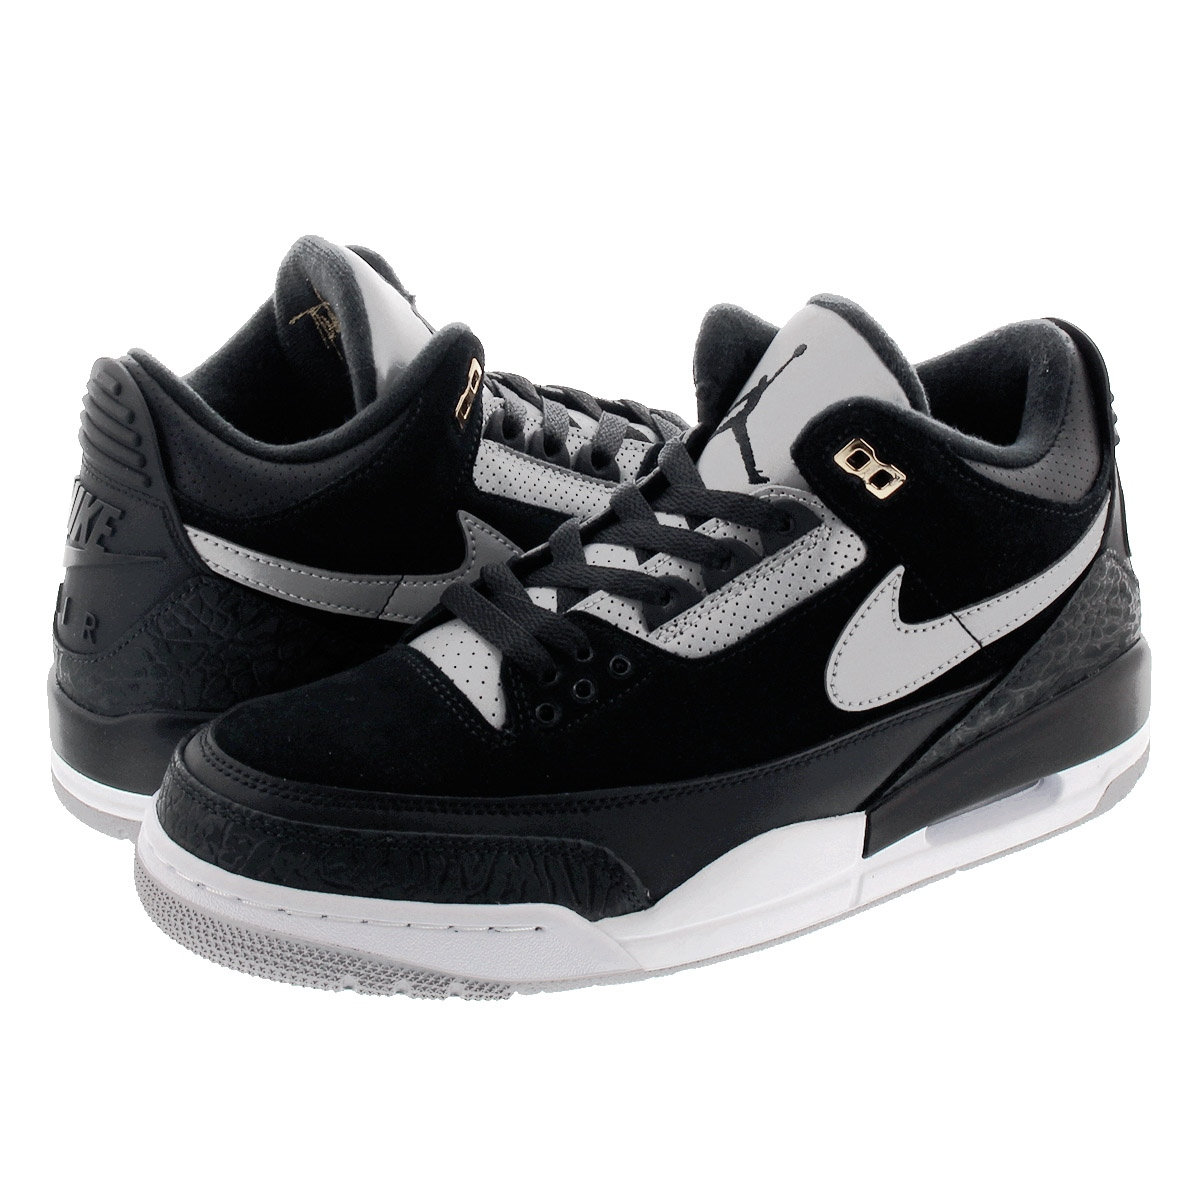 on sale 62920 5c0d9 NIKE AIR JORDAN 3 TINKER Nike Air Jordan 3 ティンカー BLACK/CEMENT GREY  ck4348-007